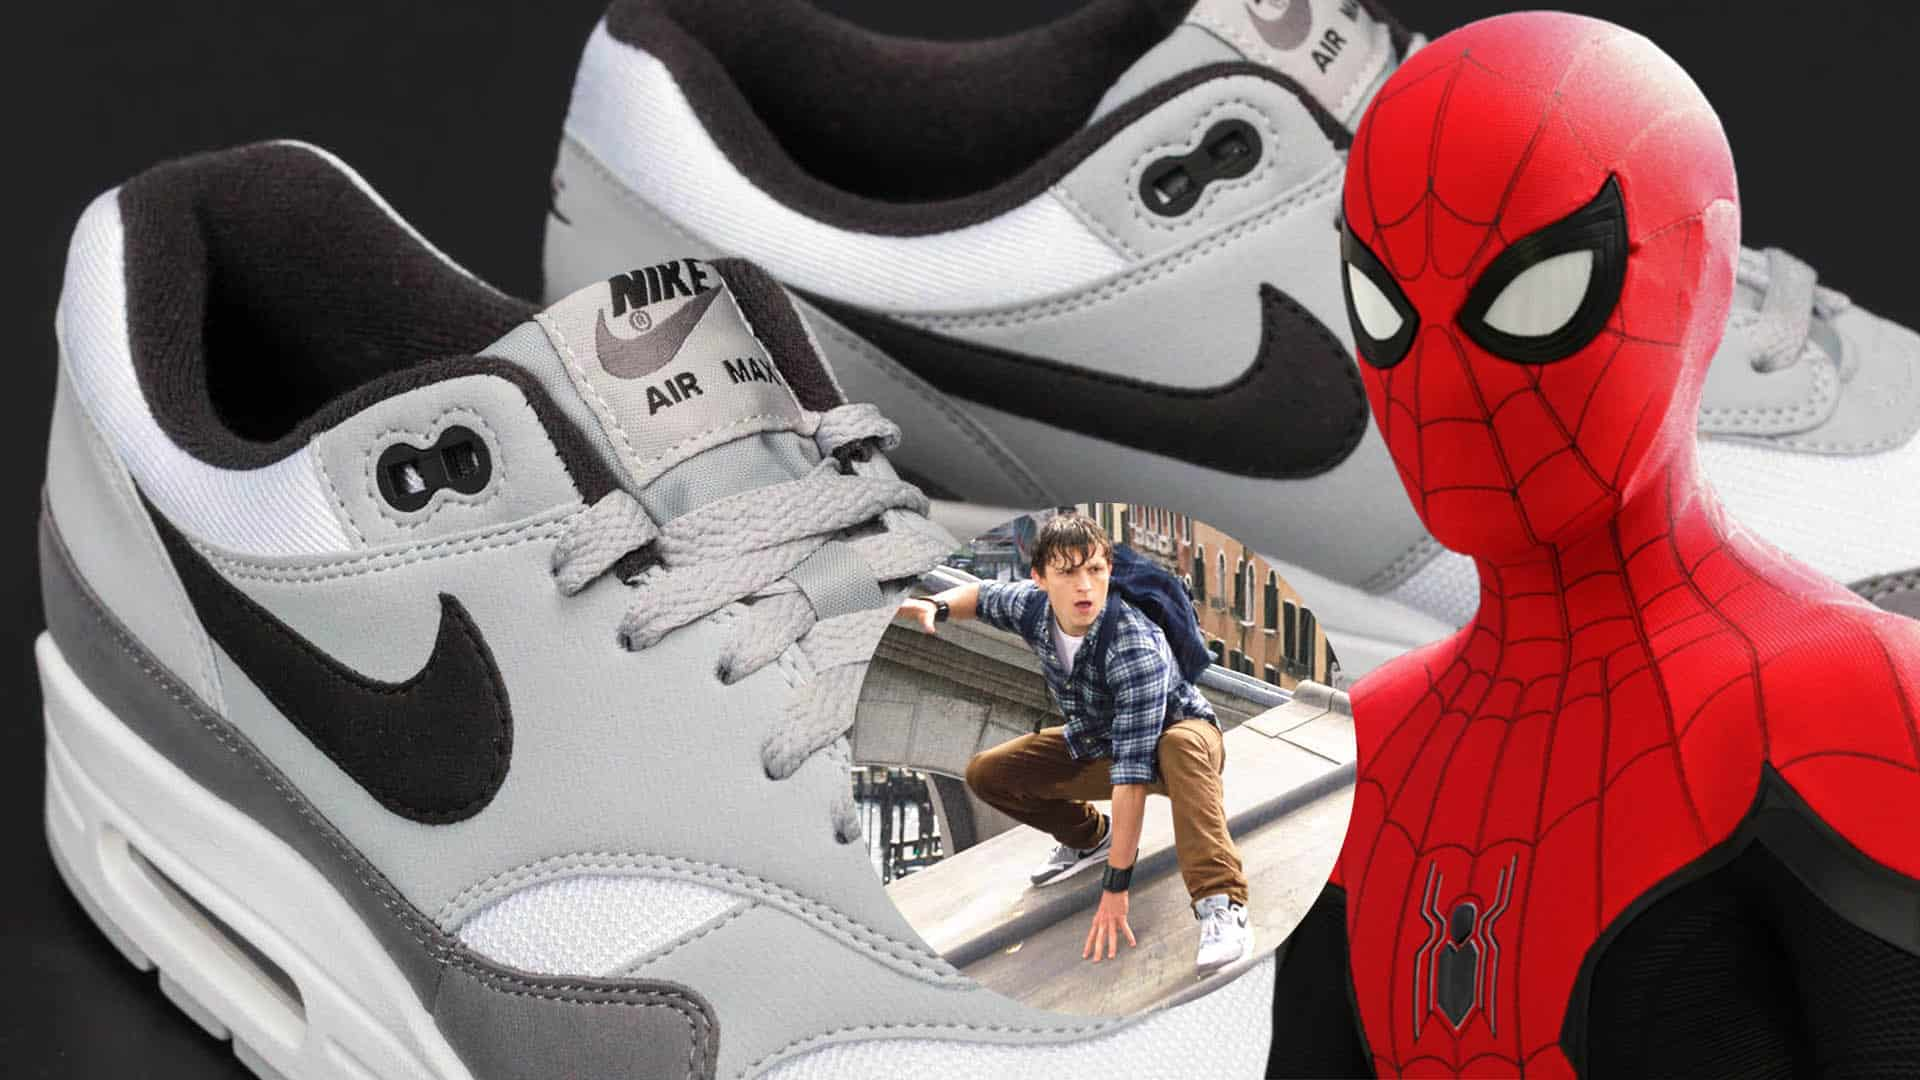 Peter Parker Wears Nike Air Max 1 Sneakers In Spider Man Far From Home